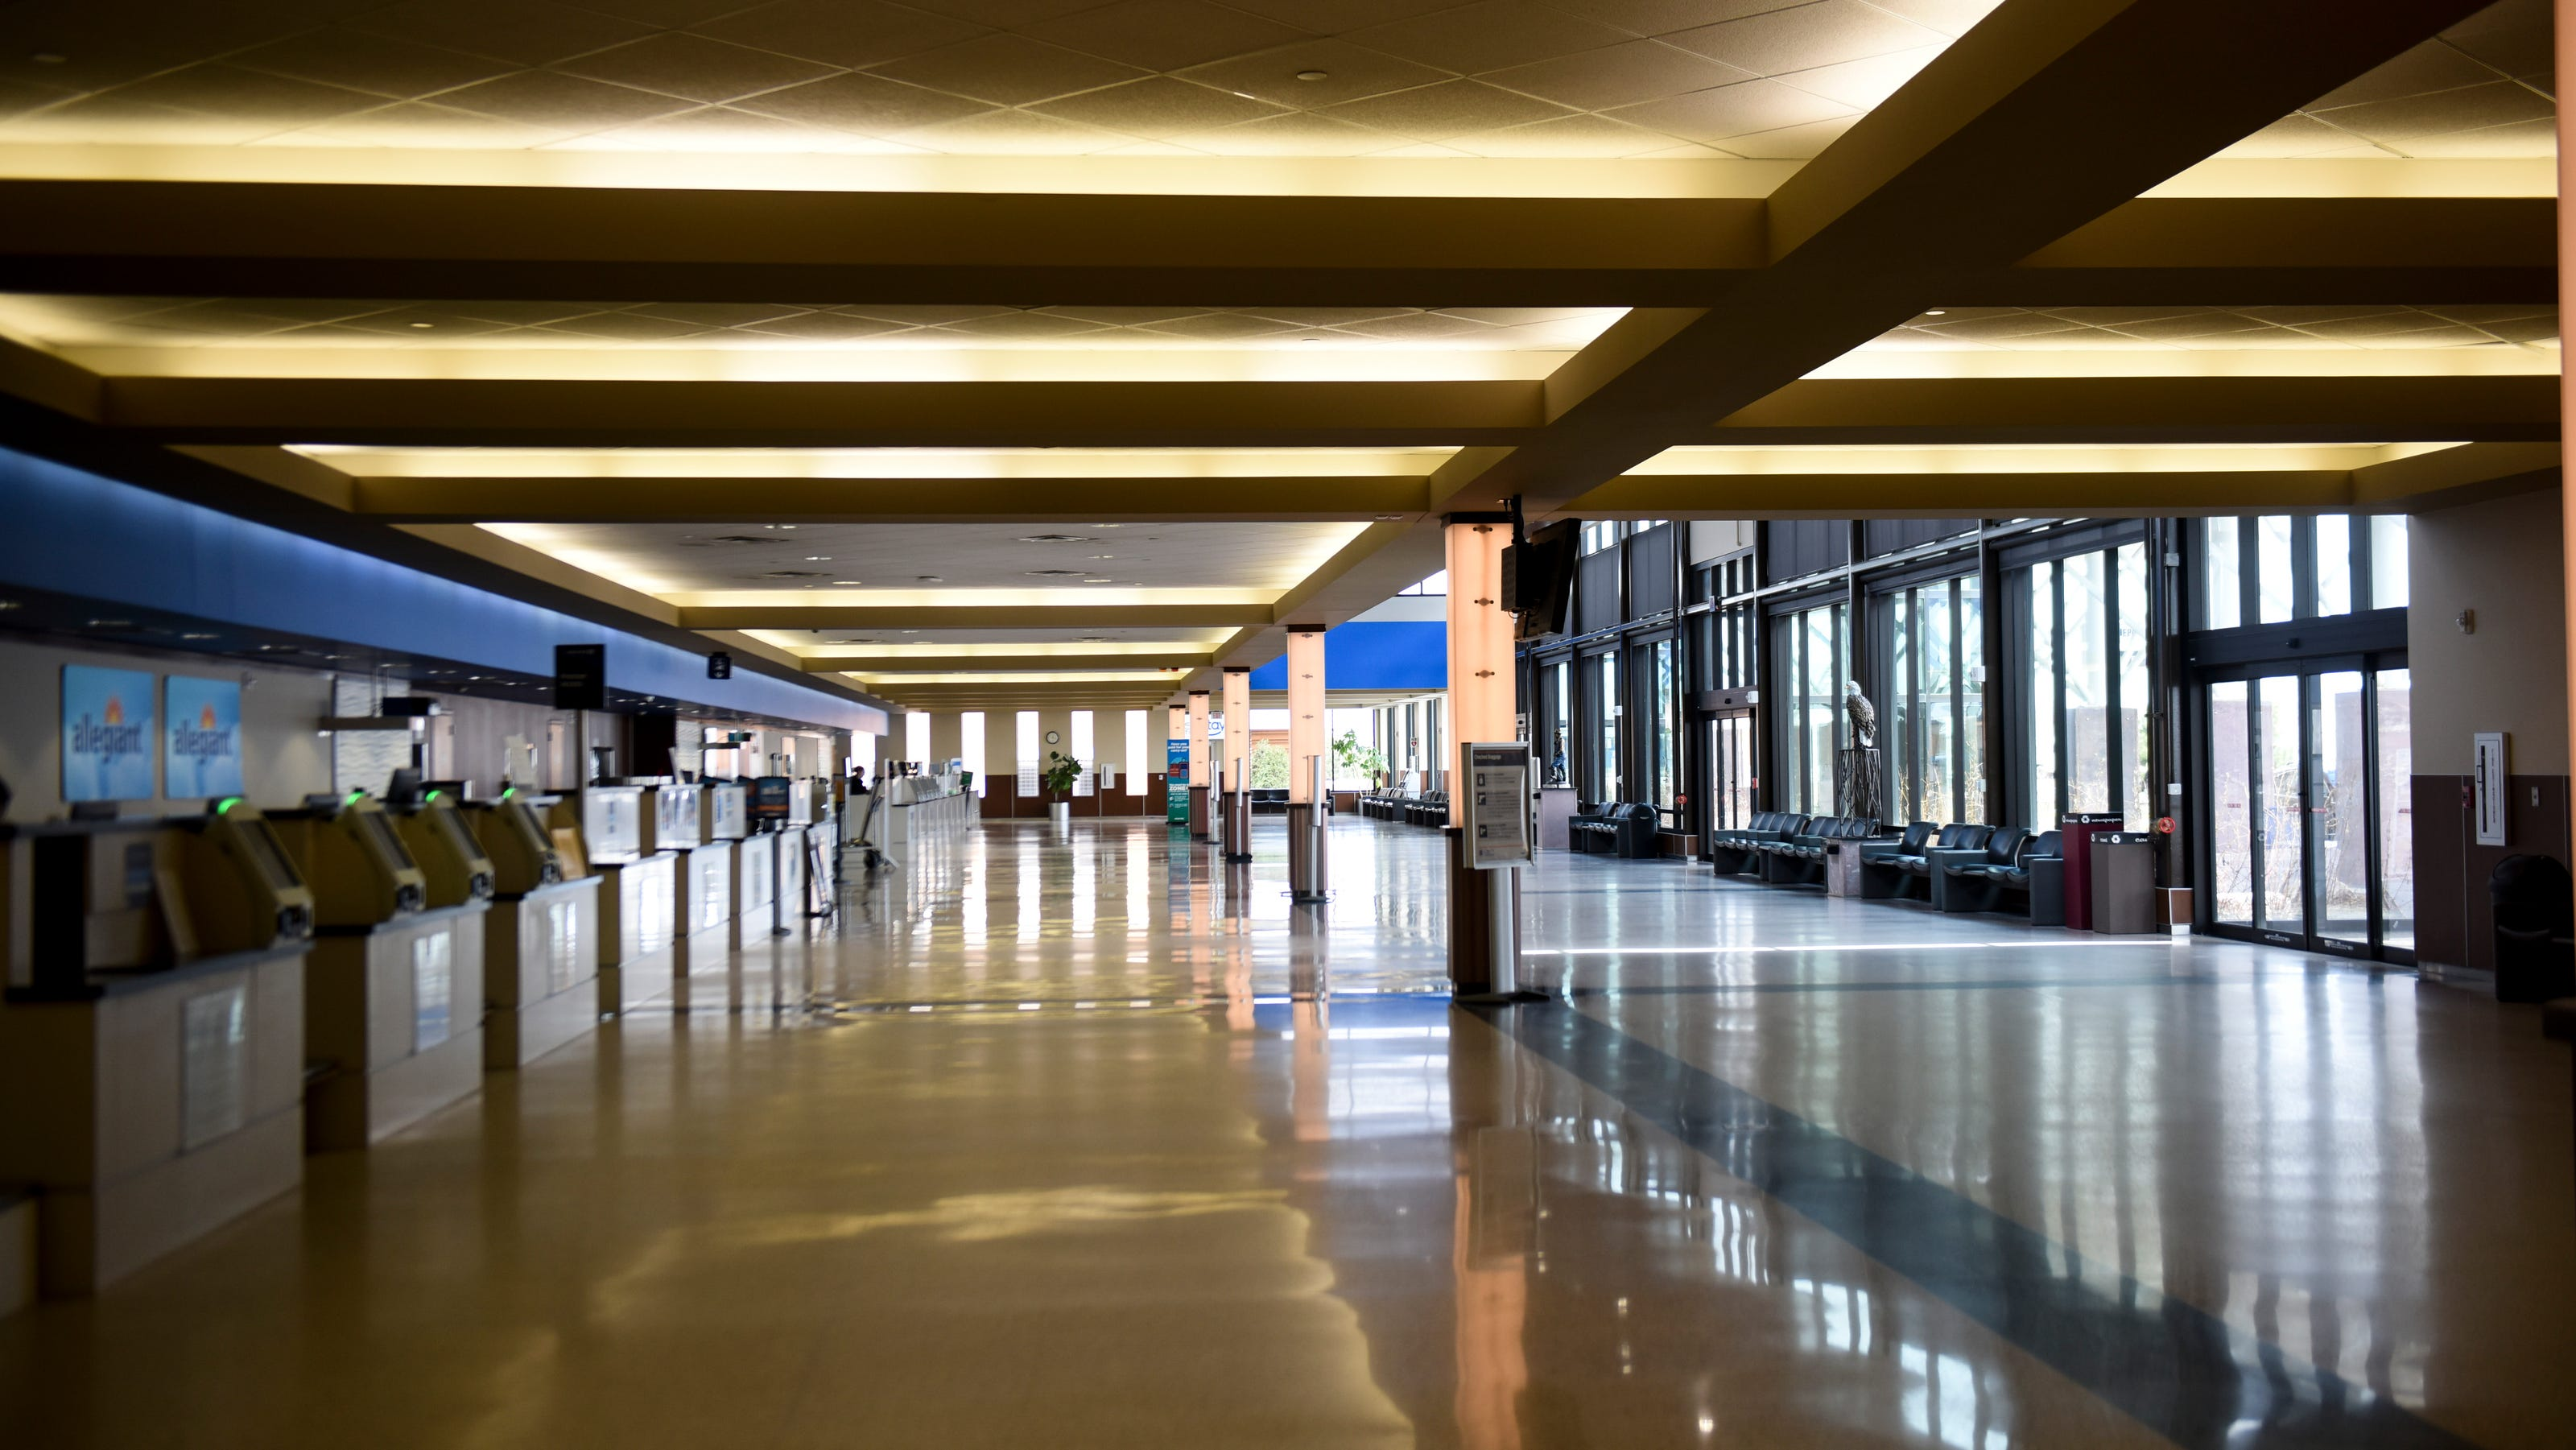 Sioux Falls Rapid City Airports In Line For Millions In Federal Aid